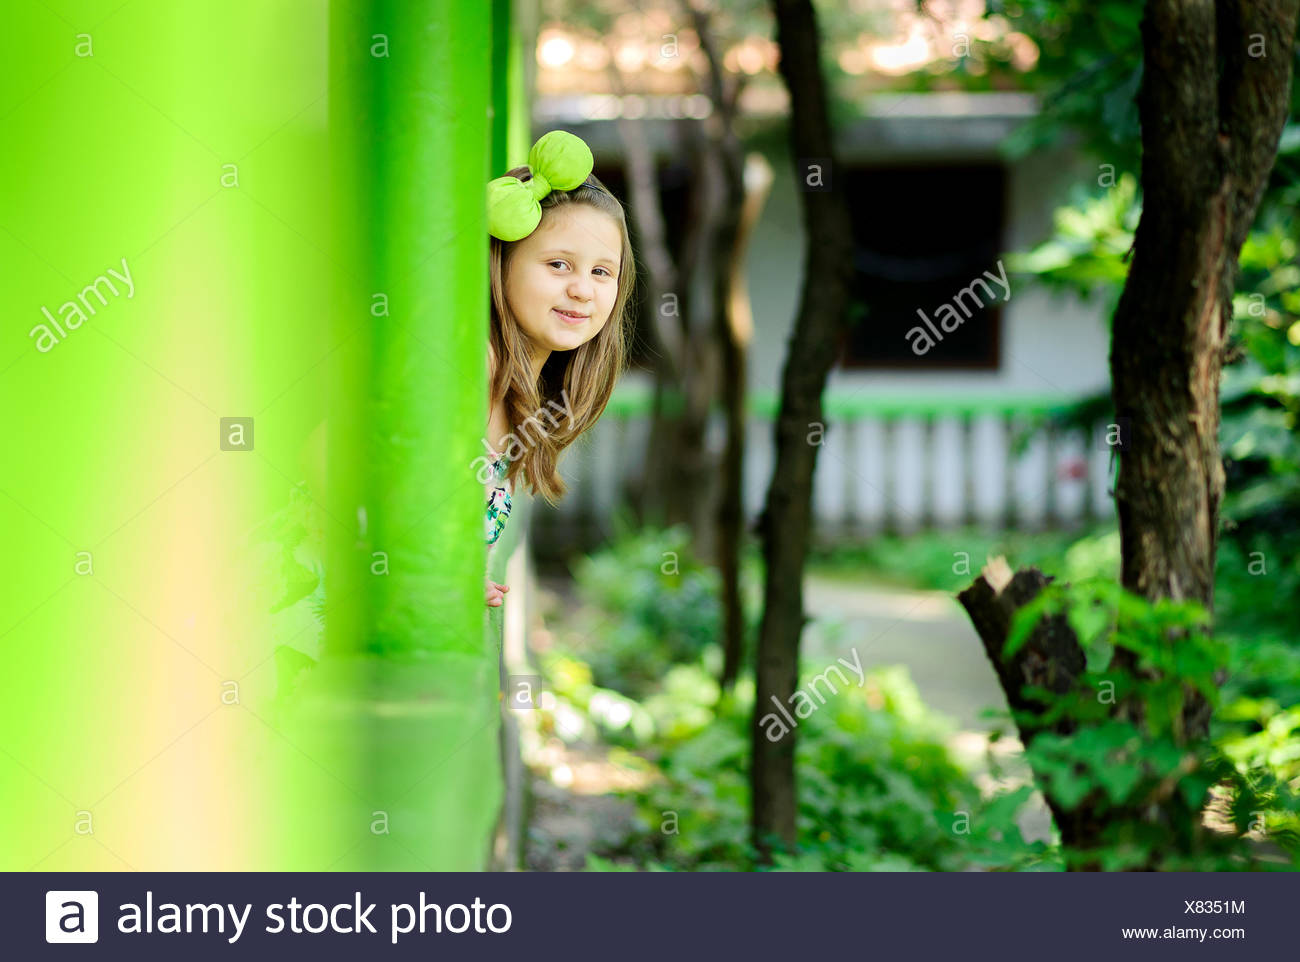 Girl (6-7) playing hide-and-seek - Stock Image